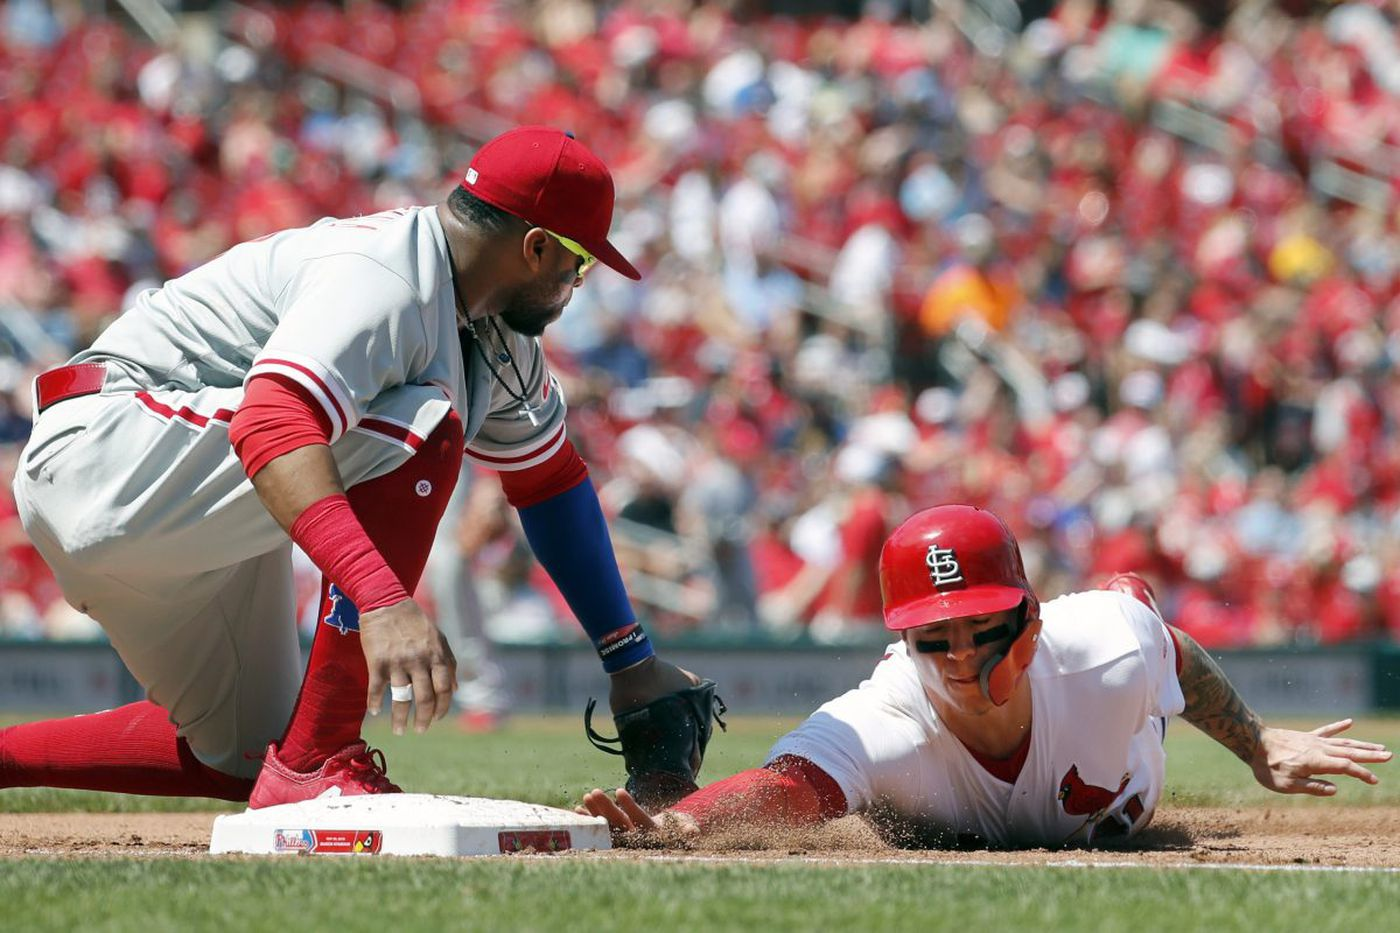 Phillies' Gabe Kapler still confident in Carlos Santana's defense despite miscues